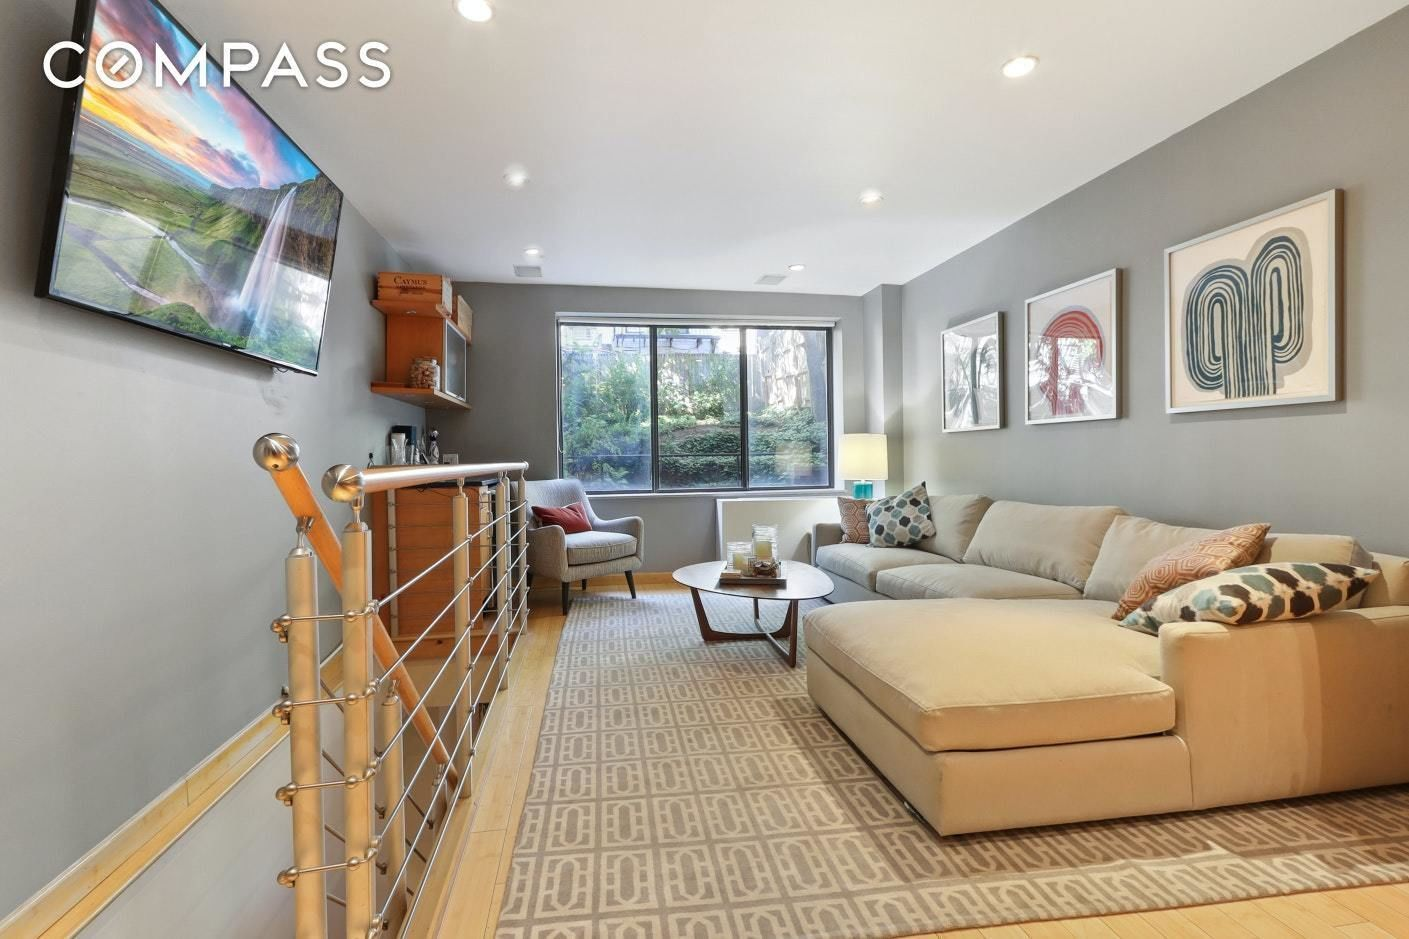 Apartment for sale at 445 West 54th Street, Apt GARDEN-C